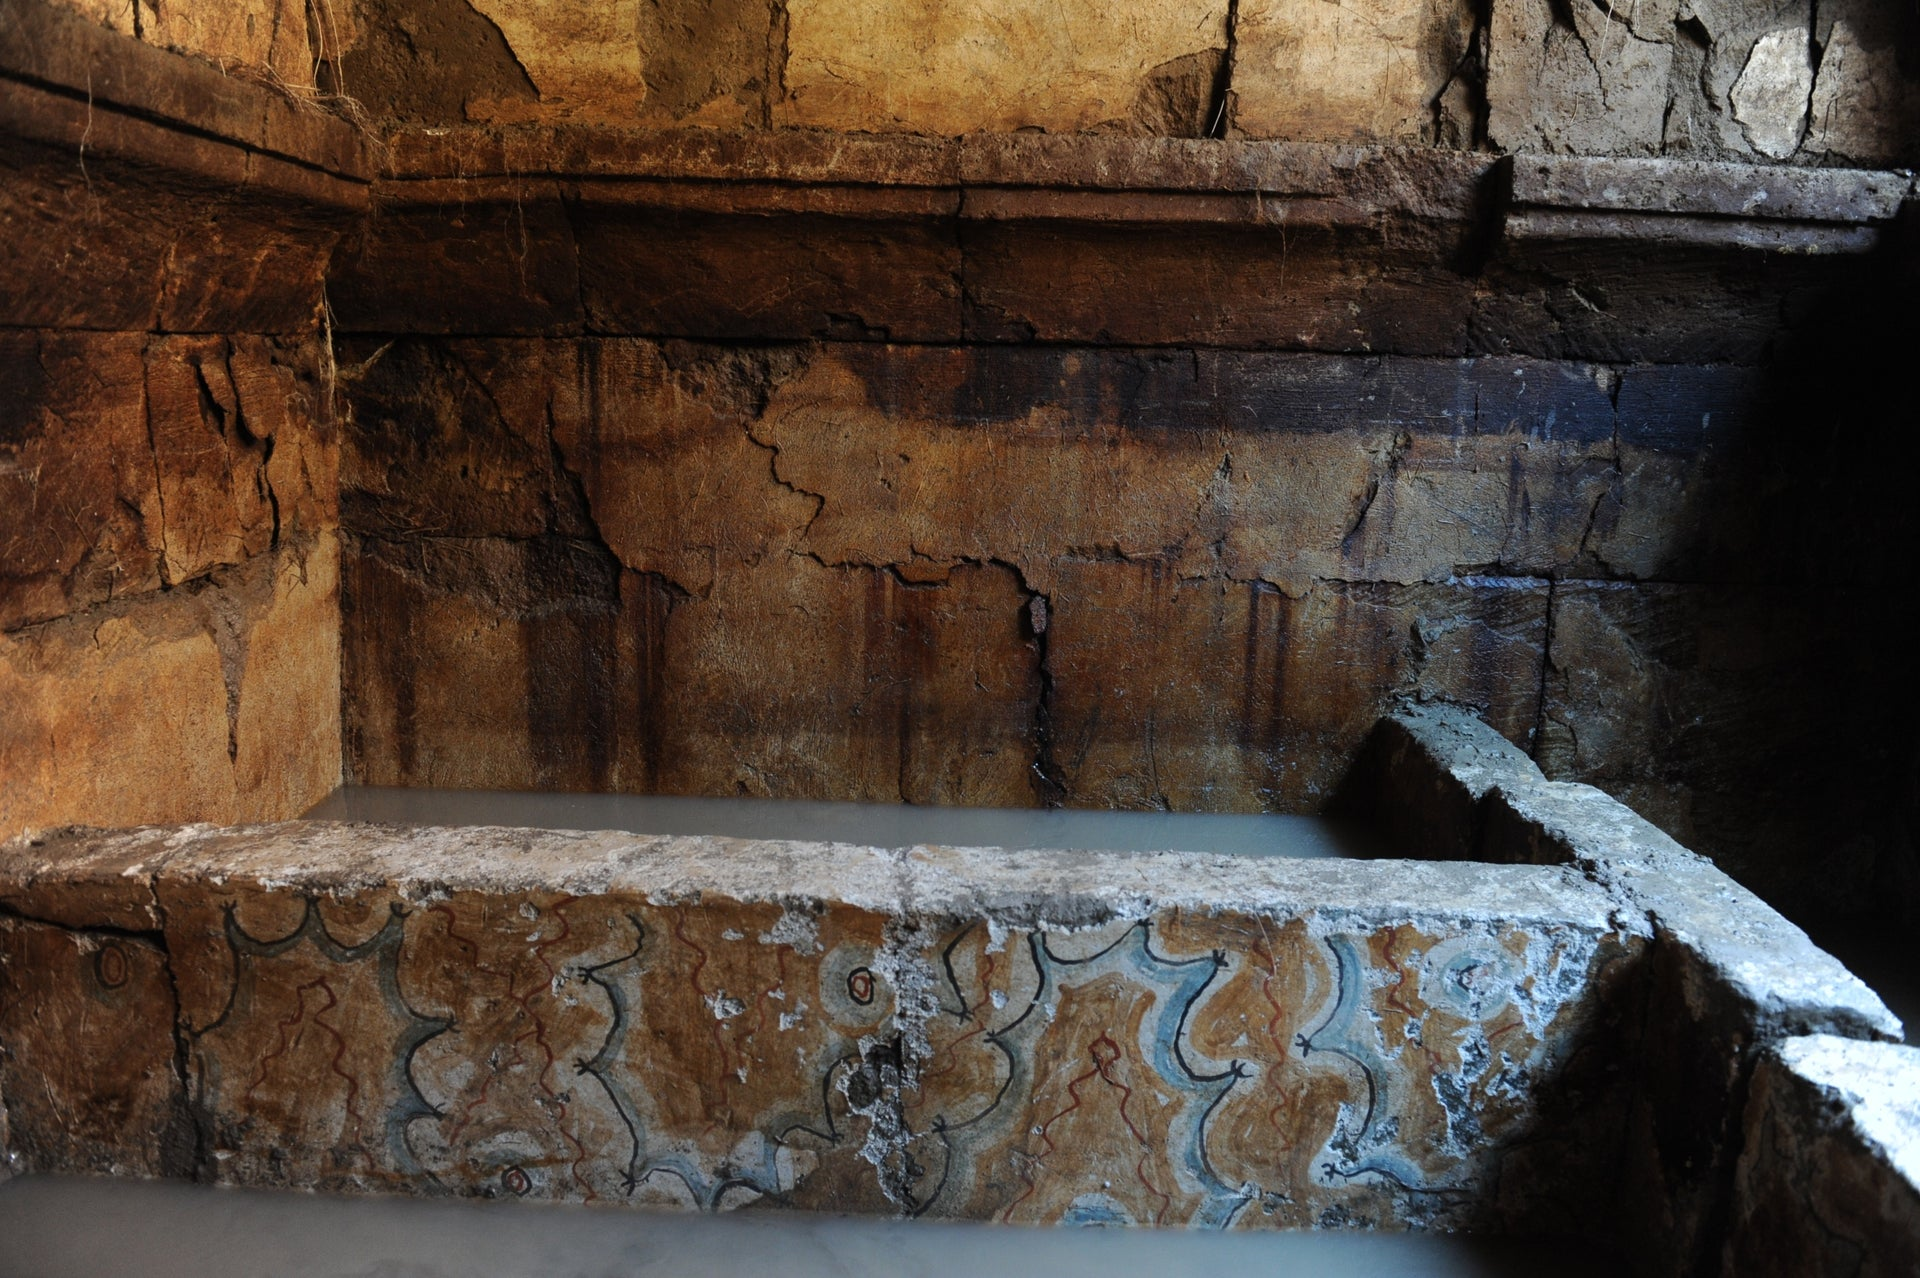 Cumae tomb with funeral boxes painted in faux marble